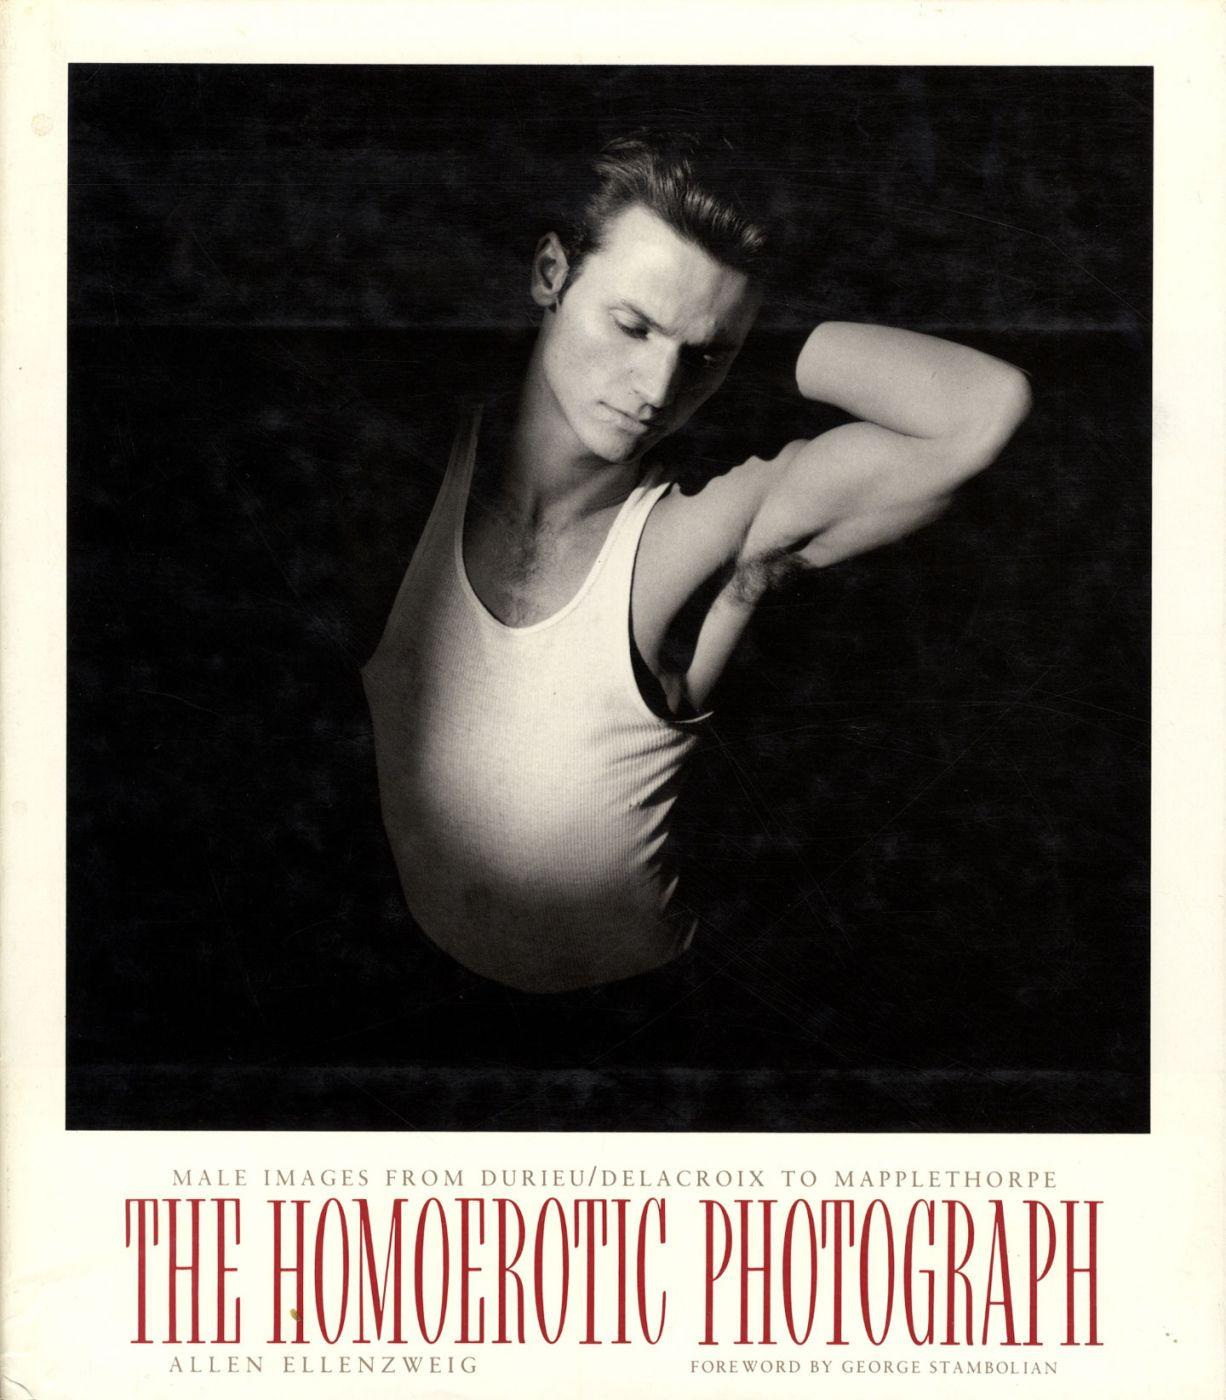 The Homoerotic Photograph: Male Images from Durieu/Délacroix to Mapplethorpe - ELLENZWEIG, Allen, STAMBOLIAN, George